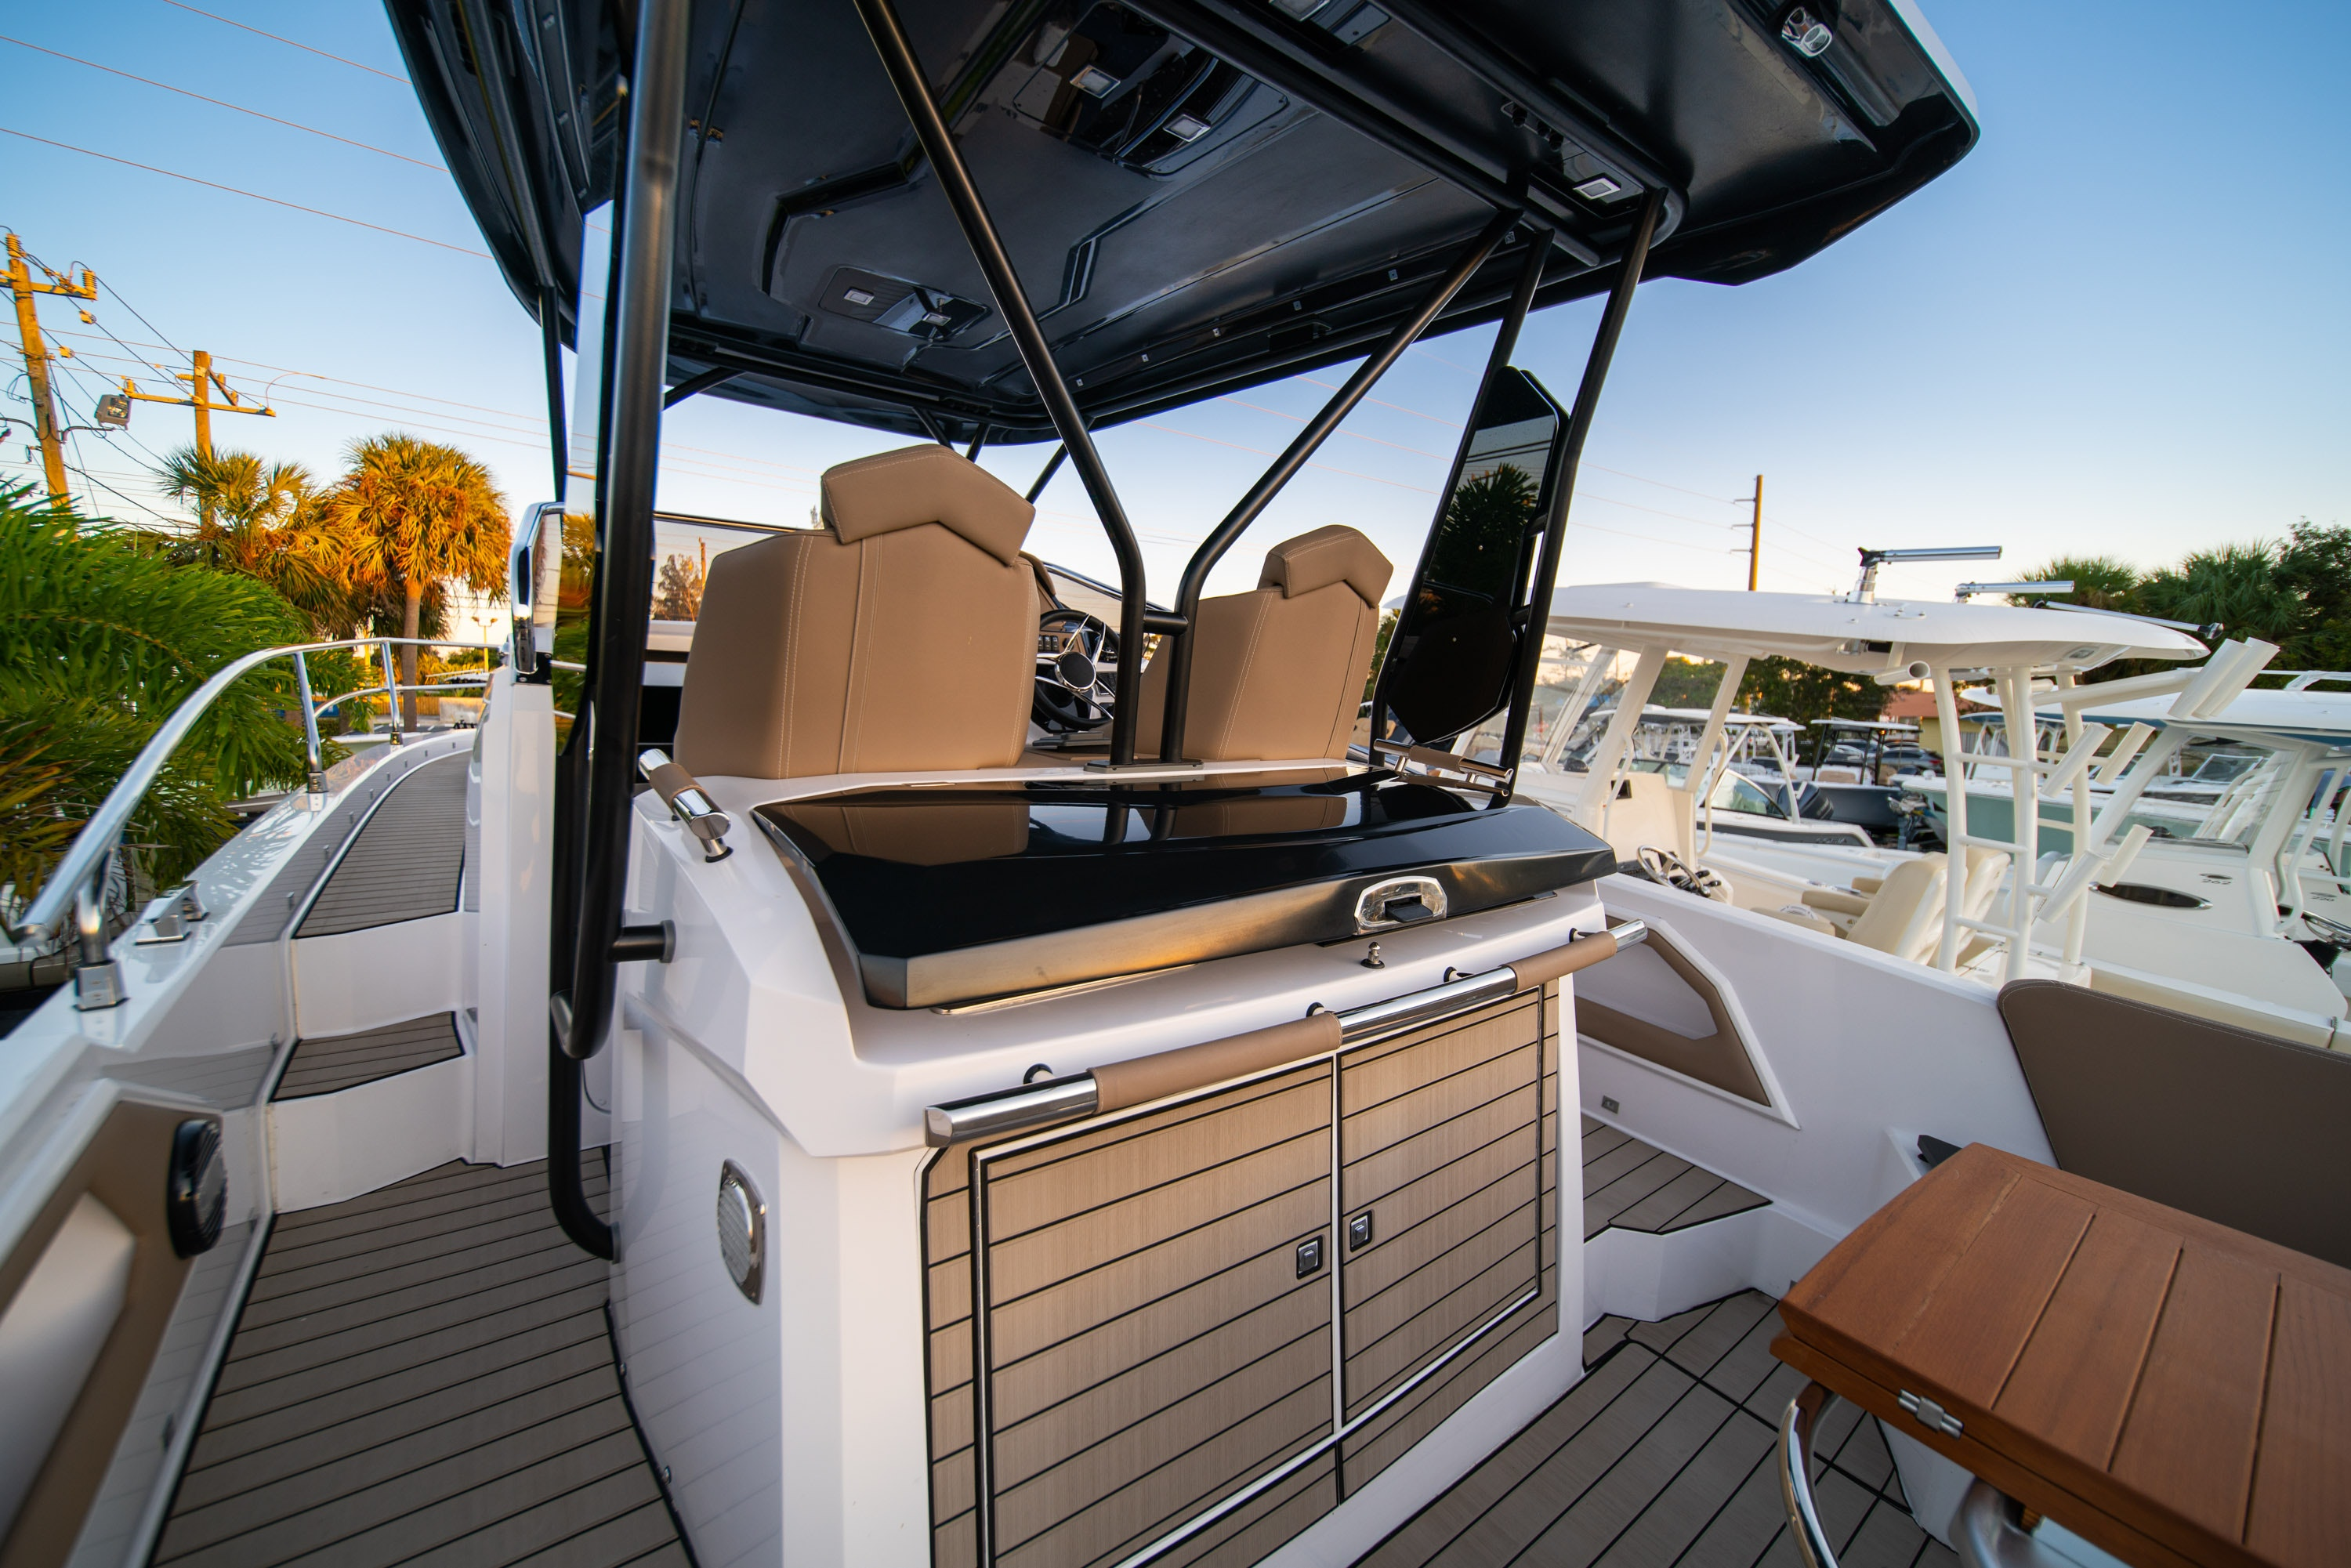 Thumbnail 12 for New 2019 Ranieri Next 370 SH boat for sale in West Palm Beach, FL